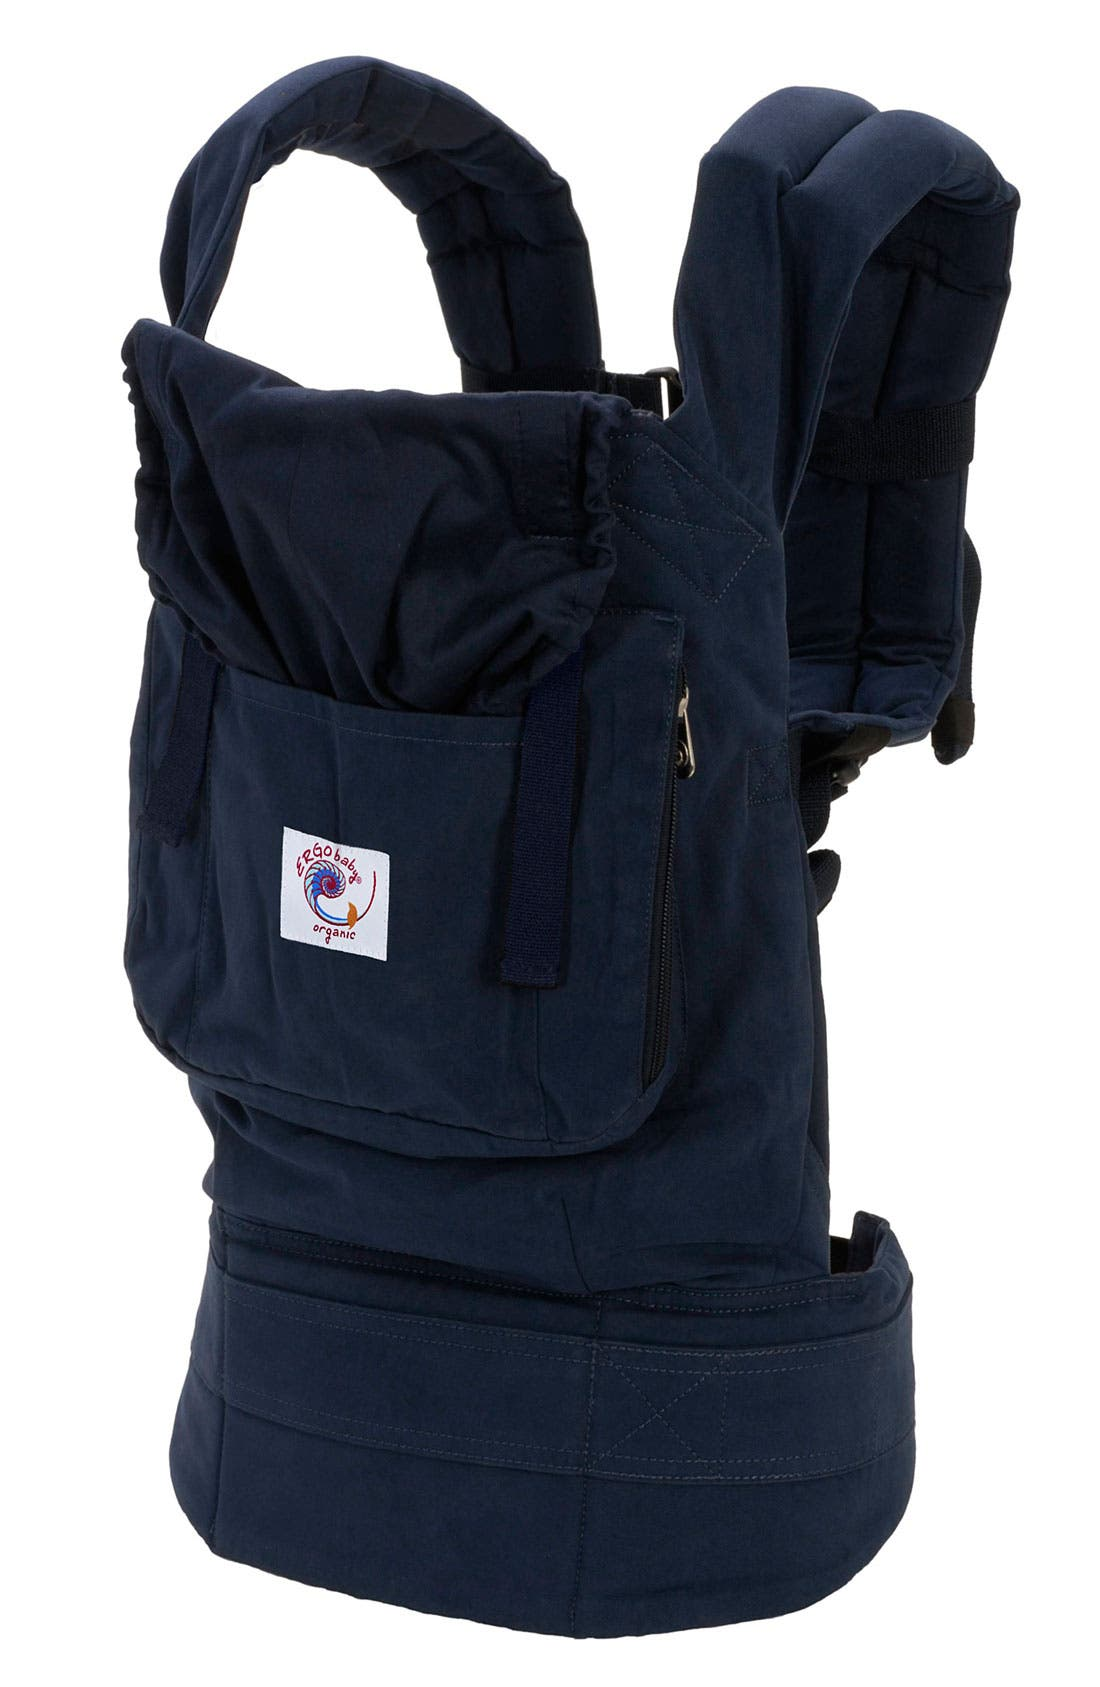 Alternate Image 1 Selected - ERGObaby Baby Carrier